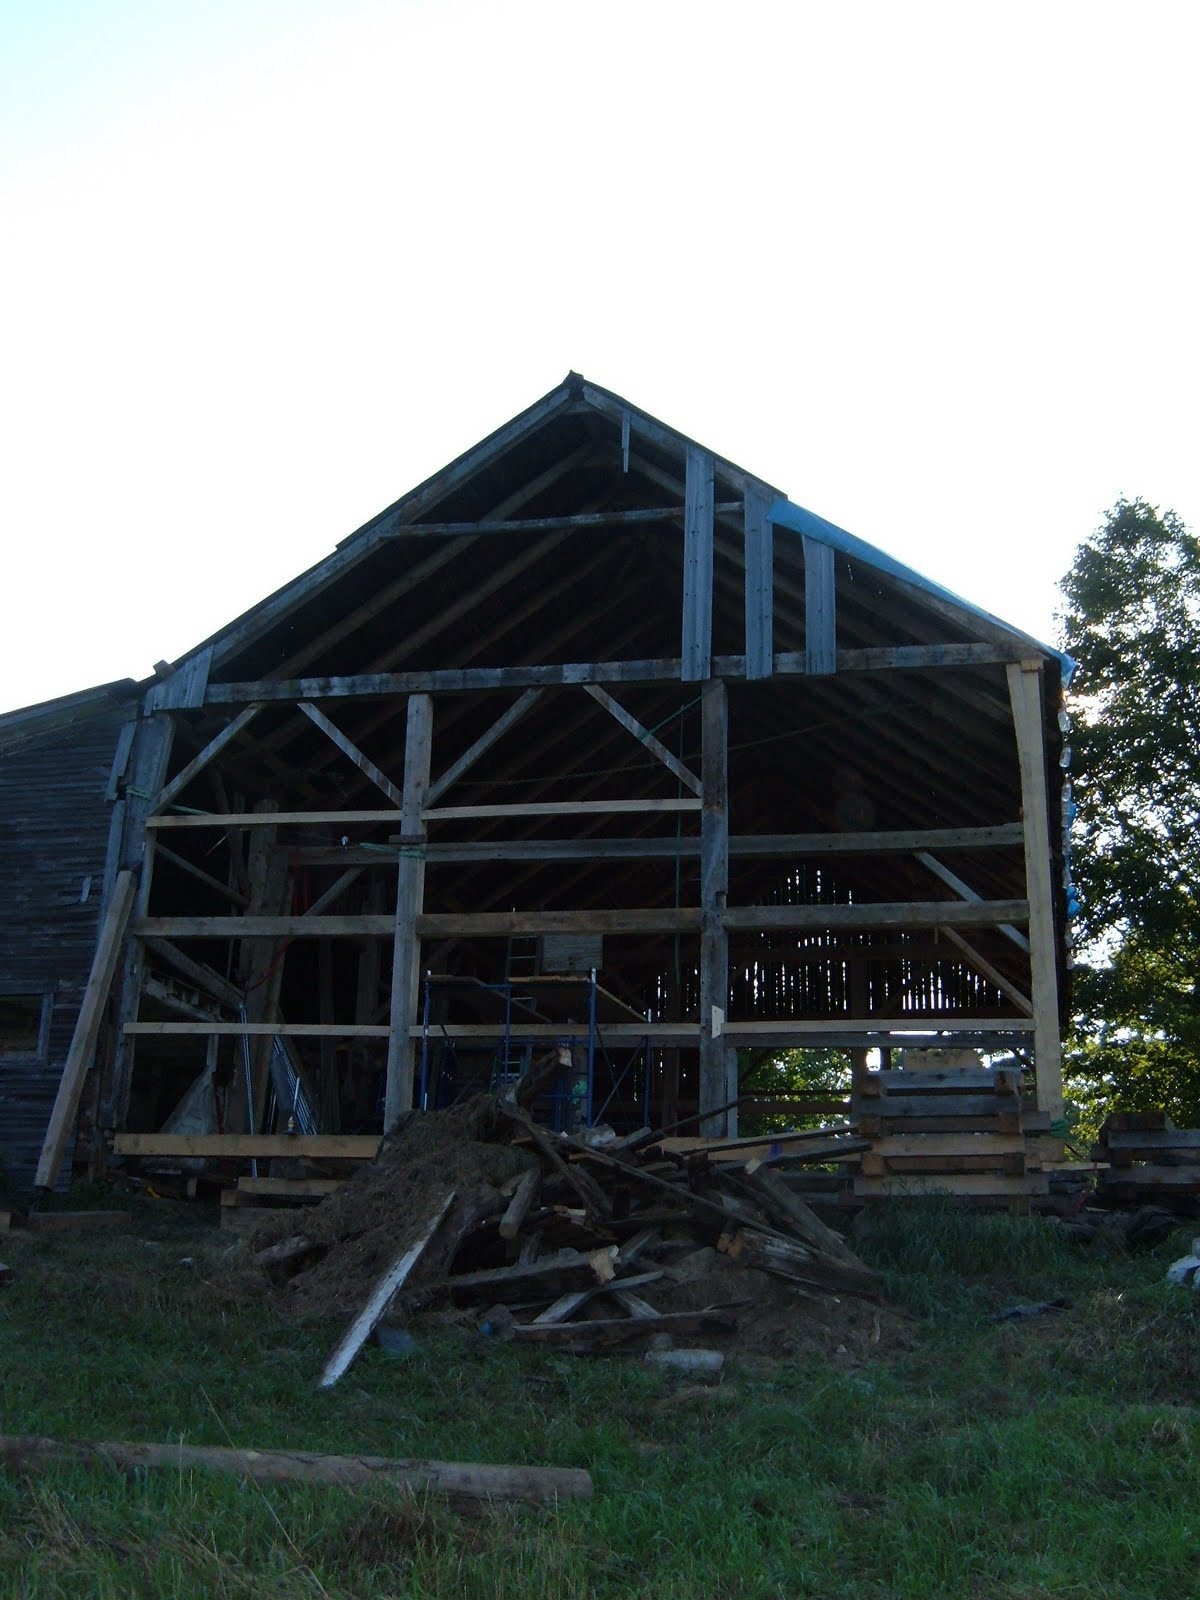 The restored gable is almost complete.